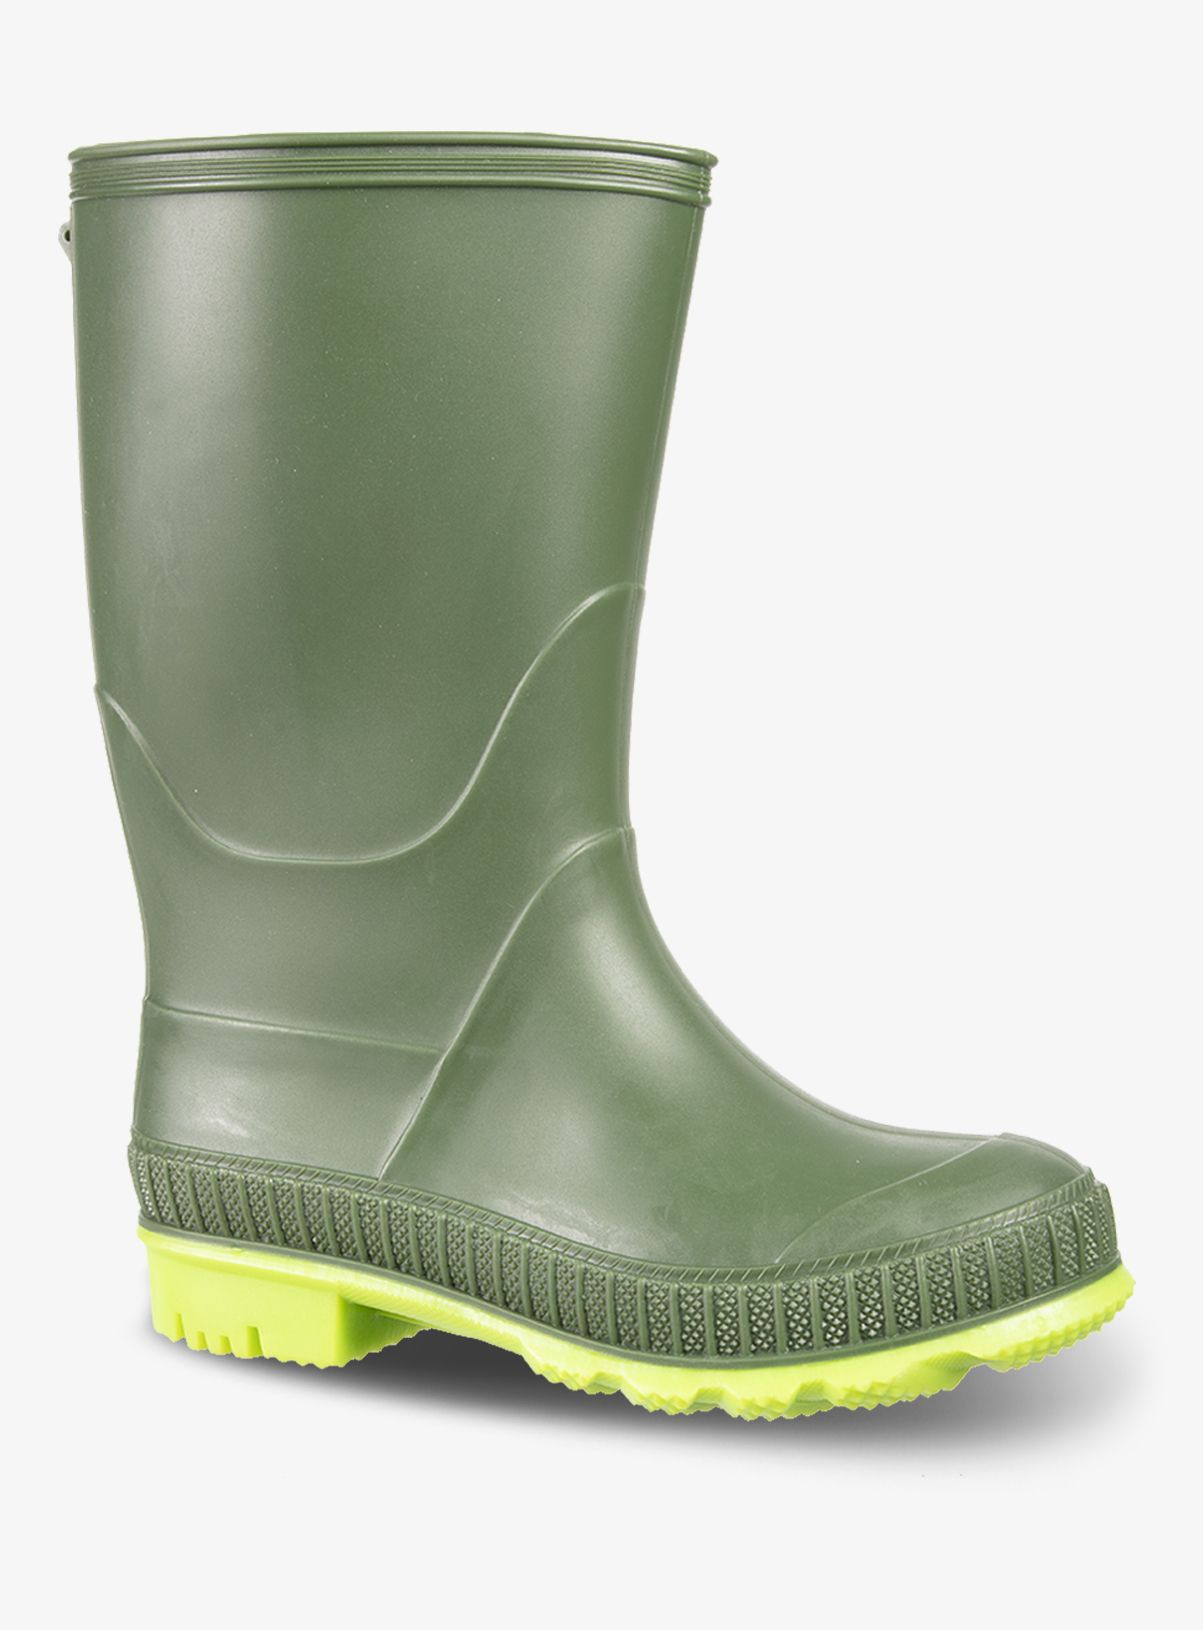 Wellies boots, Rubber rain boots, Boots